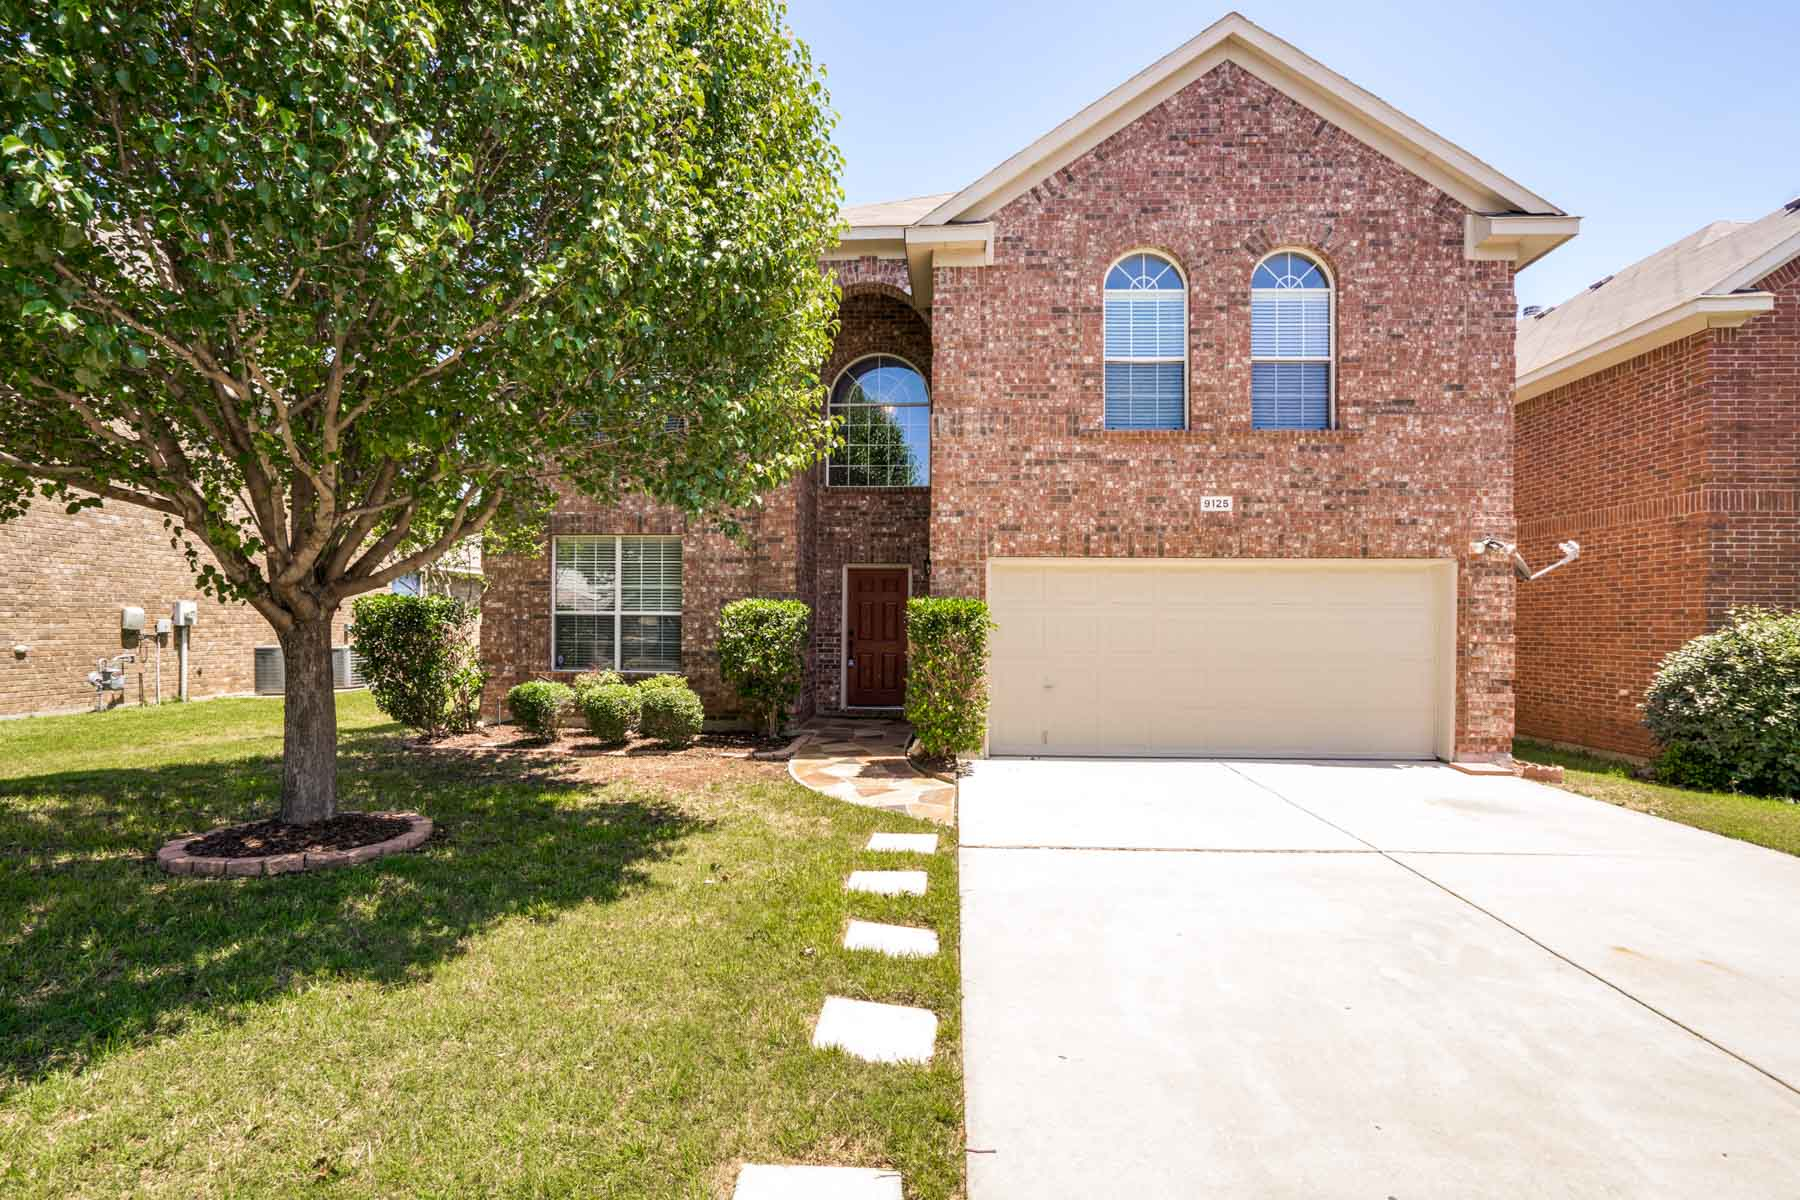 Single Family Home for Sale at Beautifully Updated in Summer Creek Ranch 9125 Friendswood Drive Fort Worth, Texas, 76123 United States